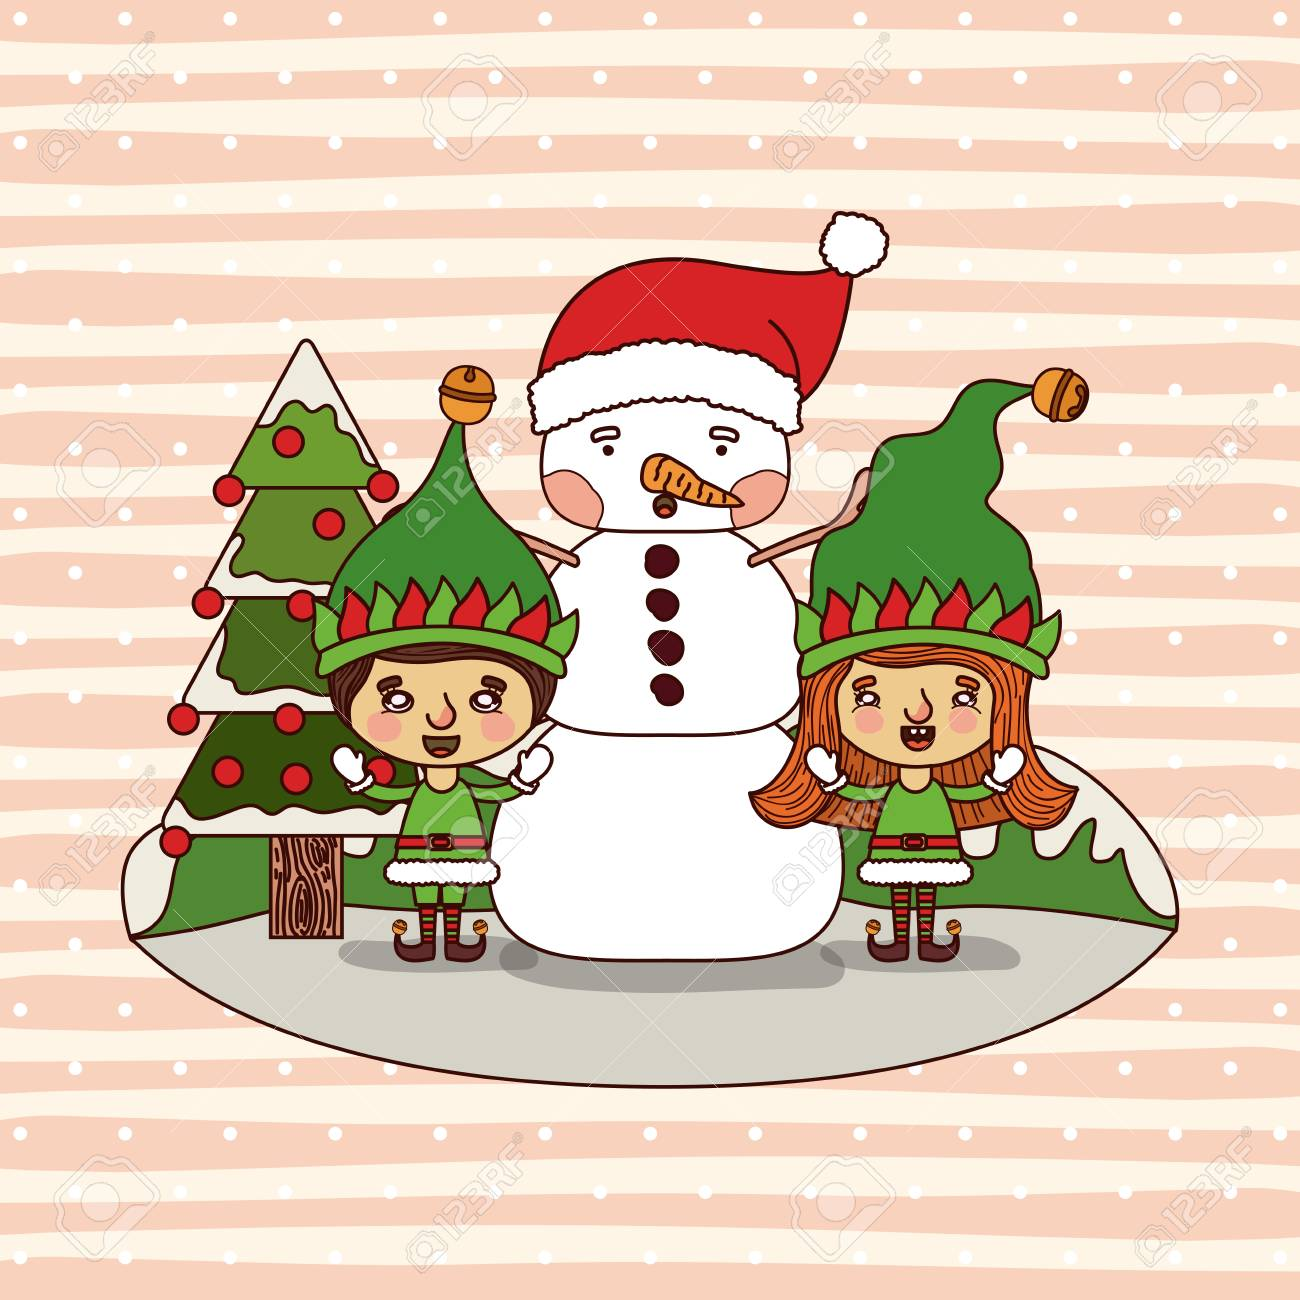 Christmas Card With Christmas Tree And Gnome Kids And Snowman ...